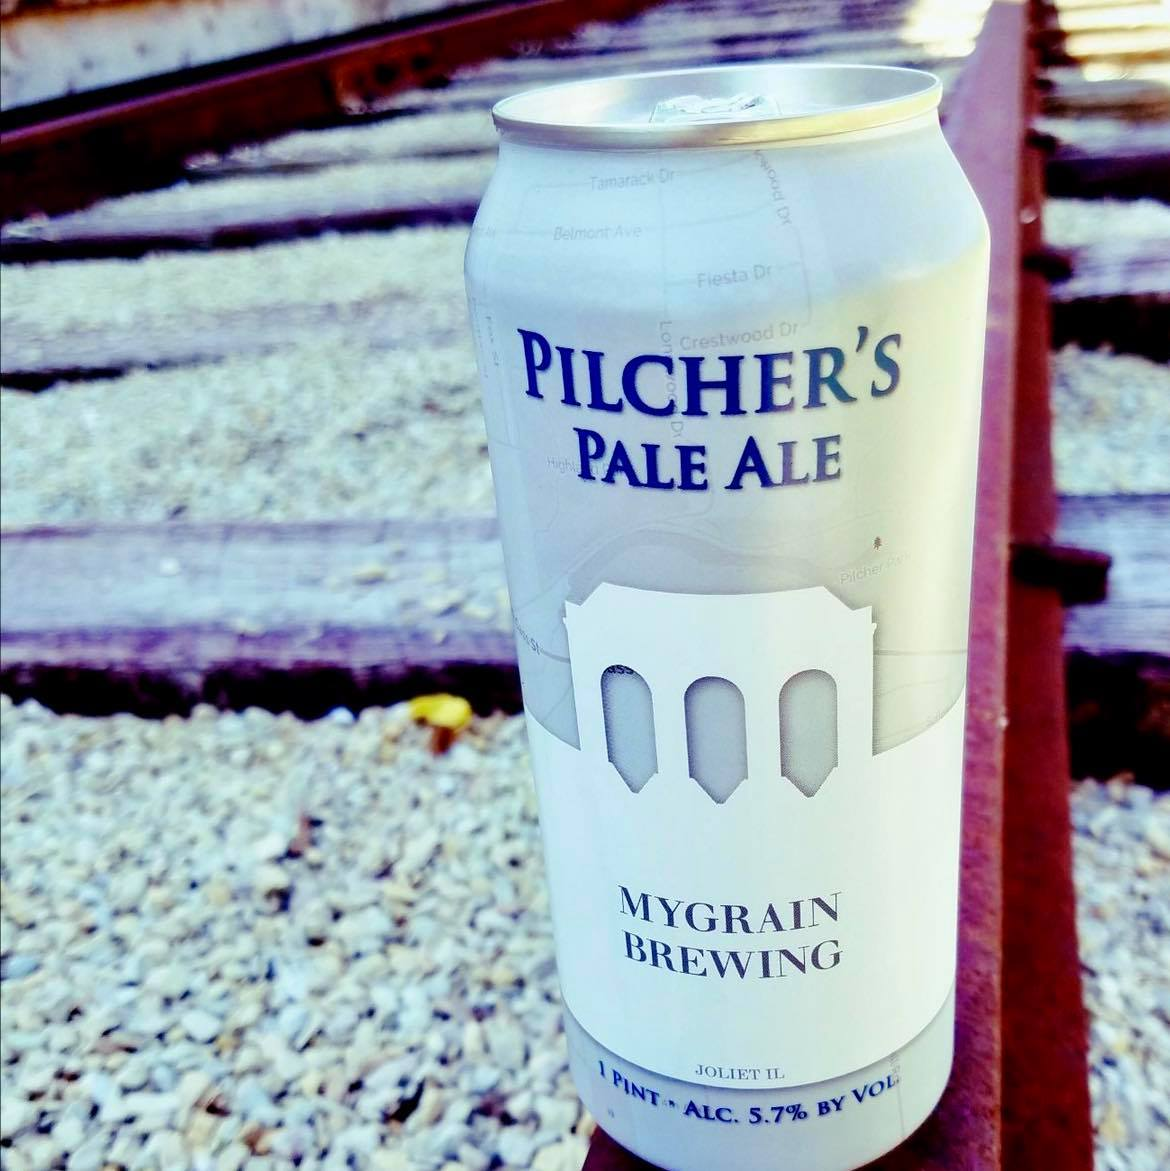 A Can of Pilcher's Pale Ale sitting on the railroad track